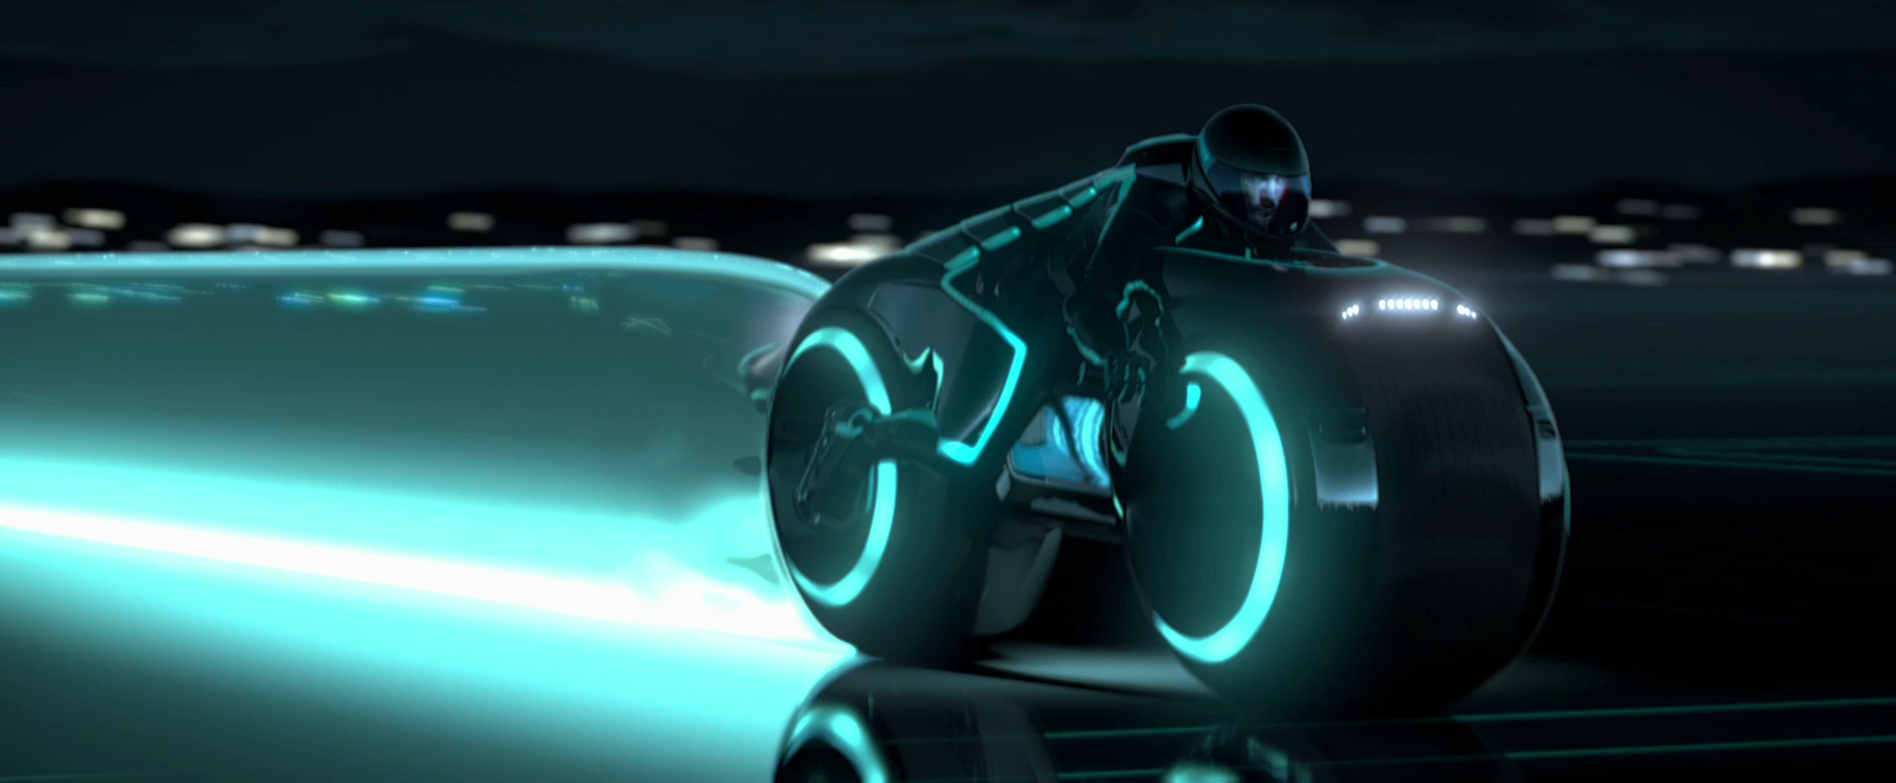 Tron live wallpaper - Tron Legacy Light Cycle Wallpaper Click Picture For High Resolution